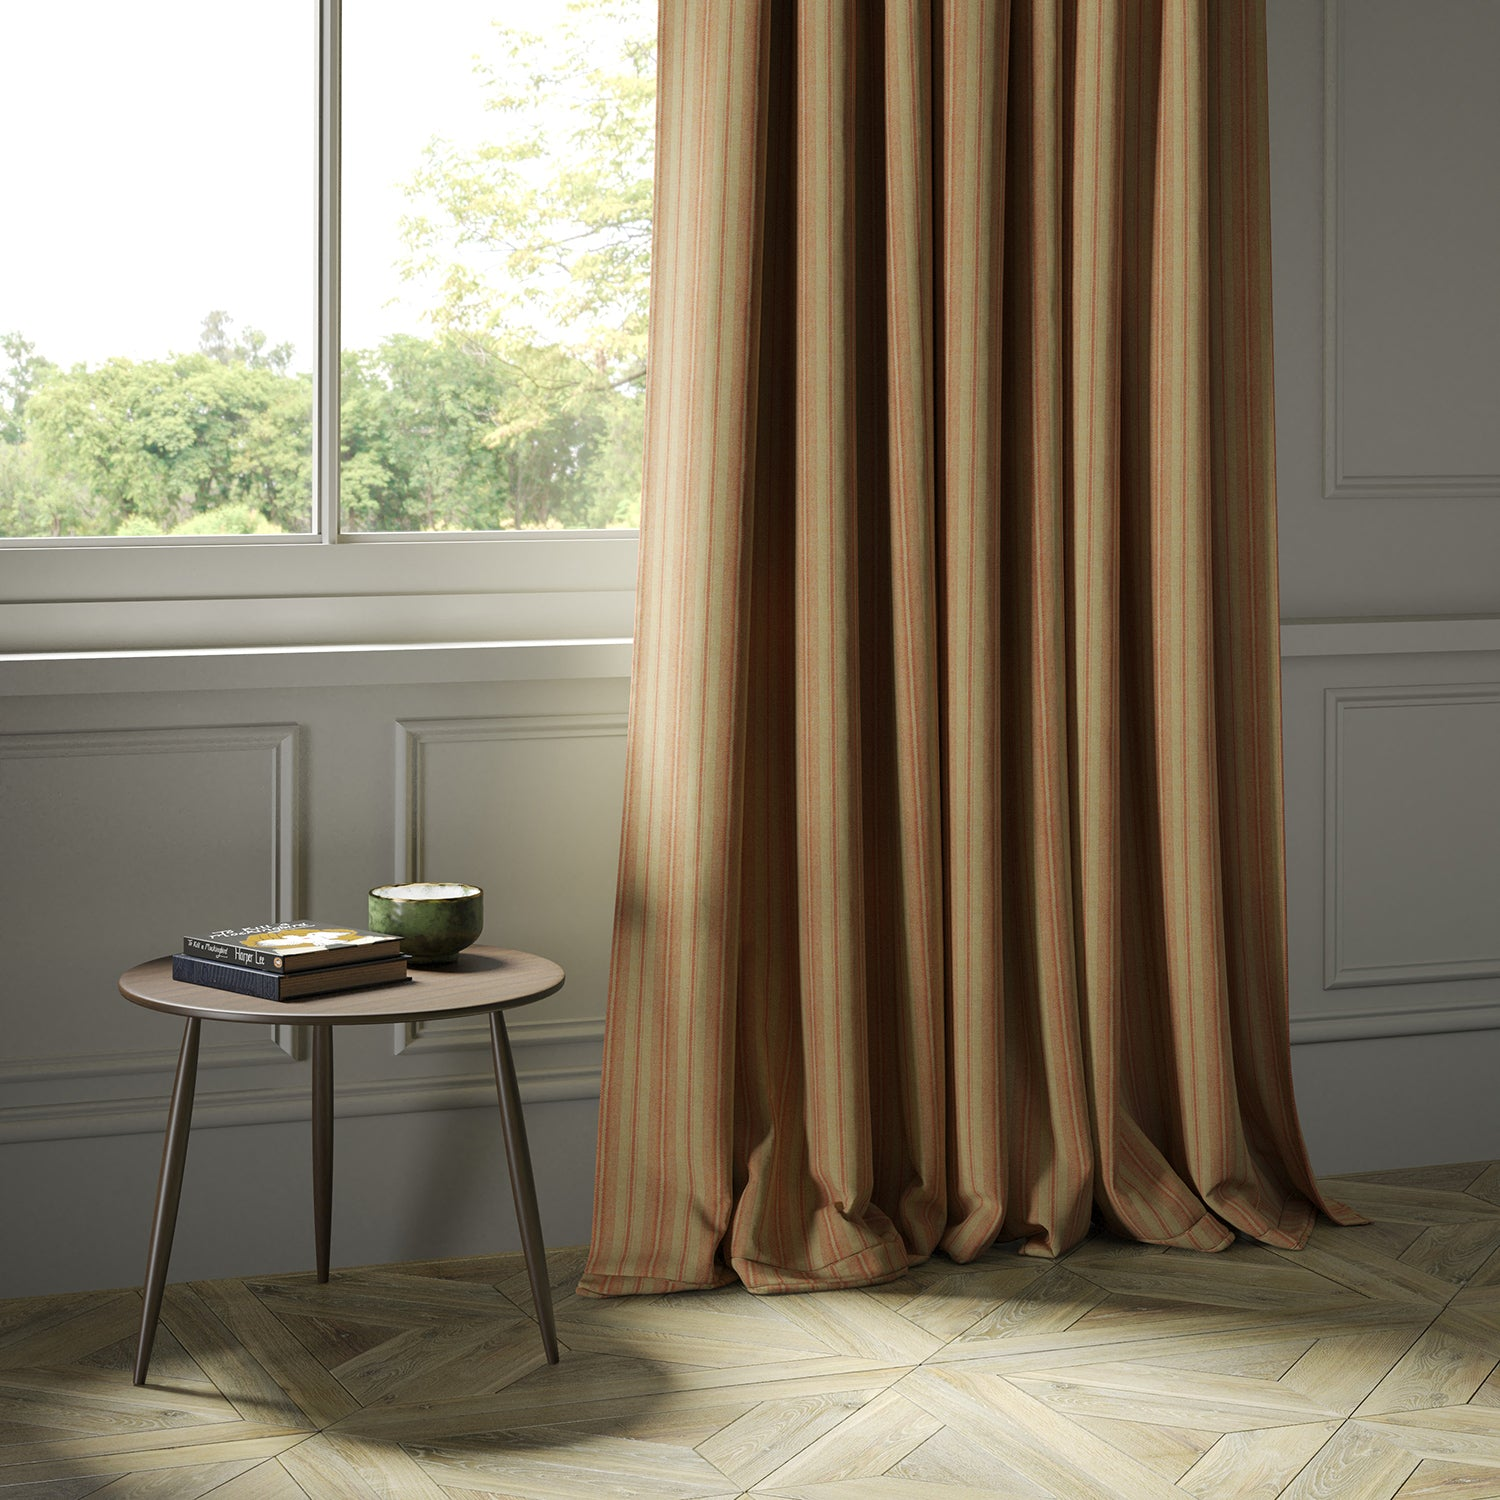 Curtains in a luxury Scottish orange and neutral wool striped fabric